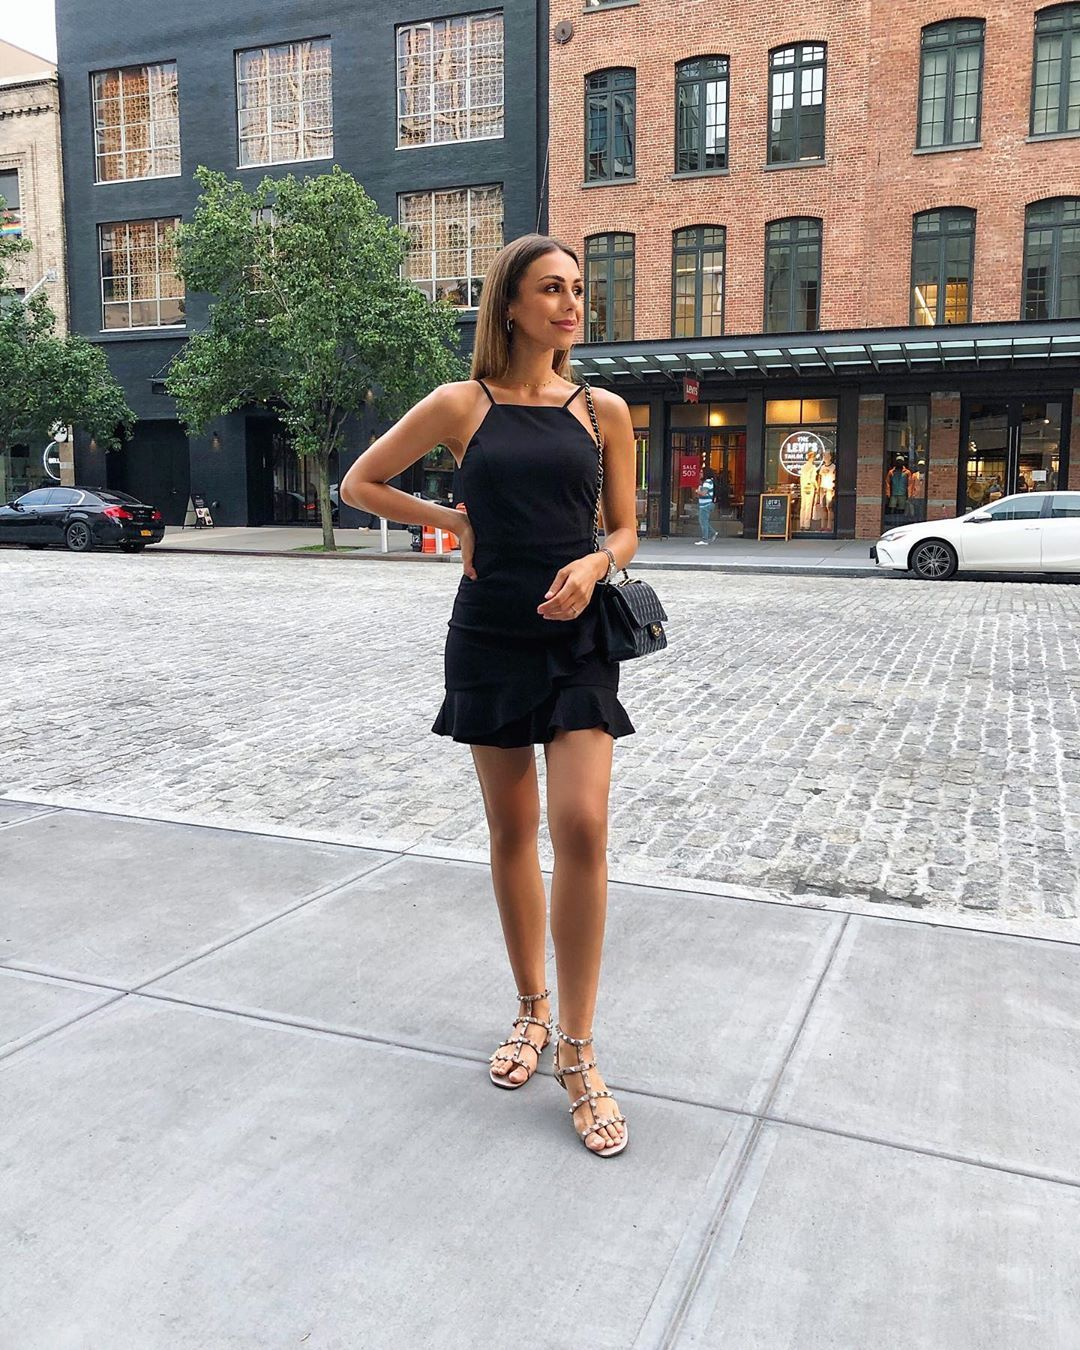 Annie Jaffrey On Instagram A Warm Summers Night Out In New York Love This Little Black Black Dress Casual Summer Simple Summer Dresses Little Black Dress [ 1350 x 1080 Pixel ]